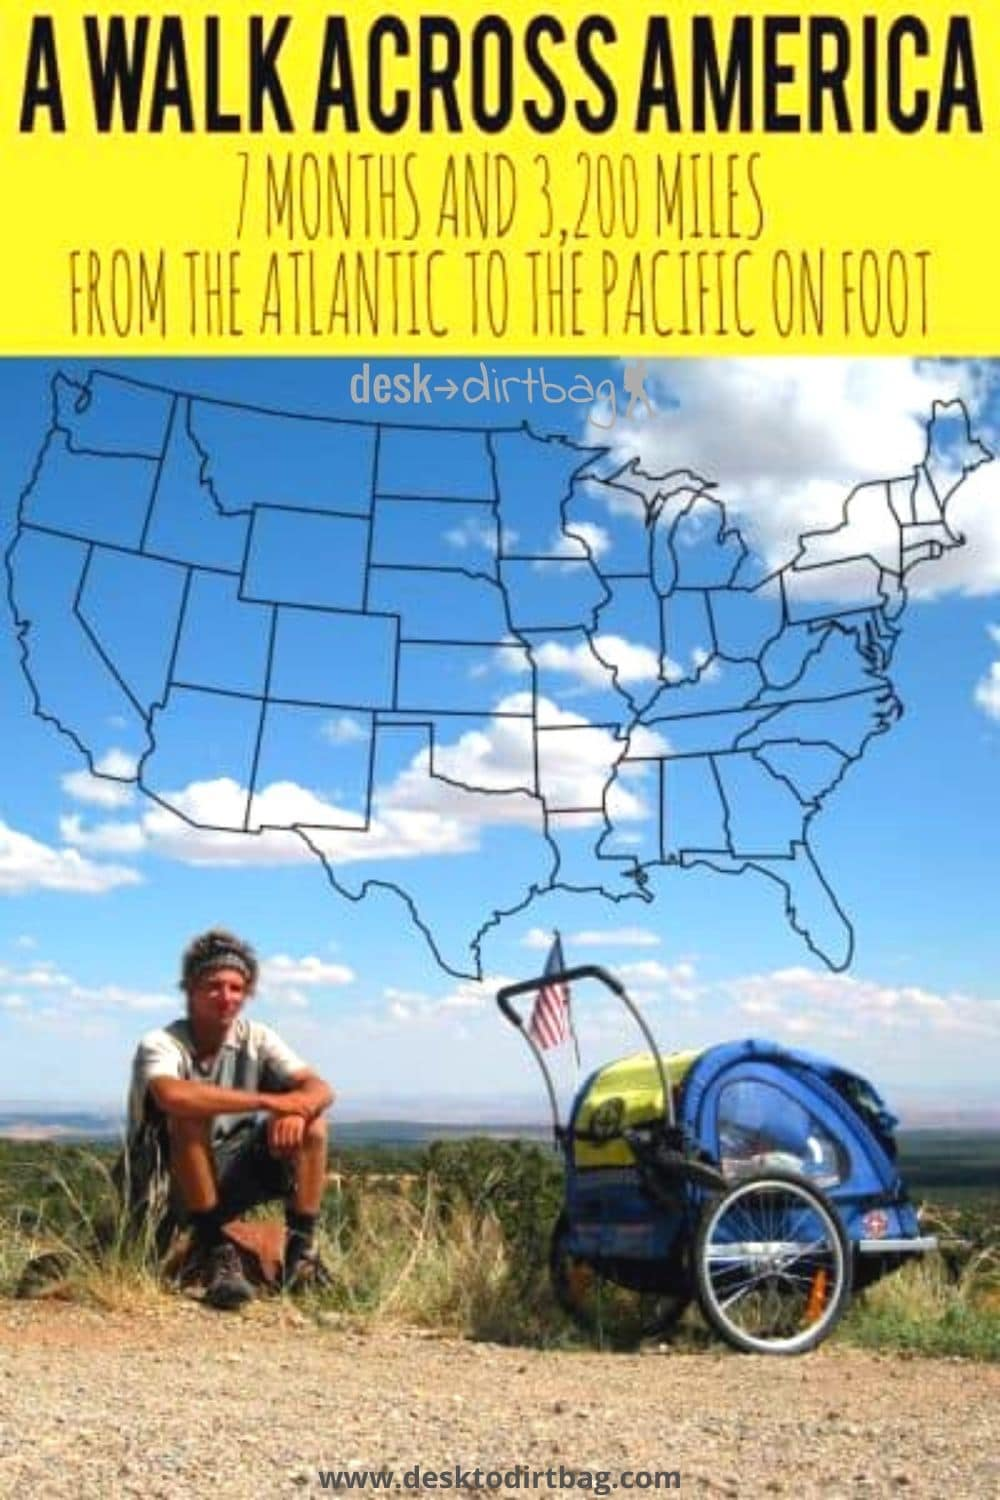 How to Walk Across America: Meet Nate Damm and His Life on Foot